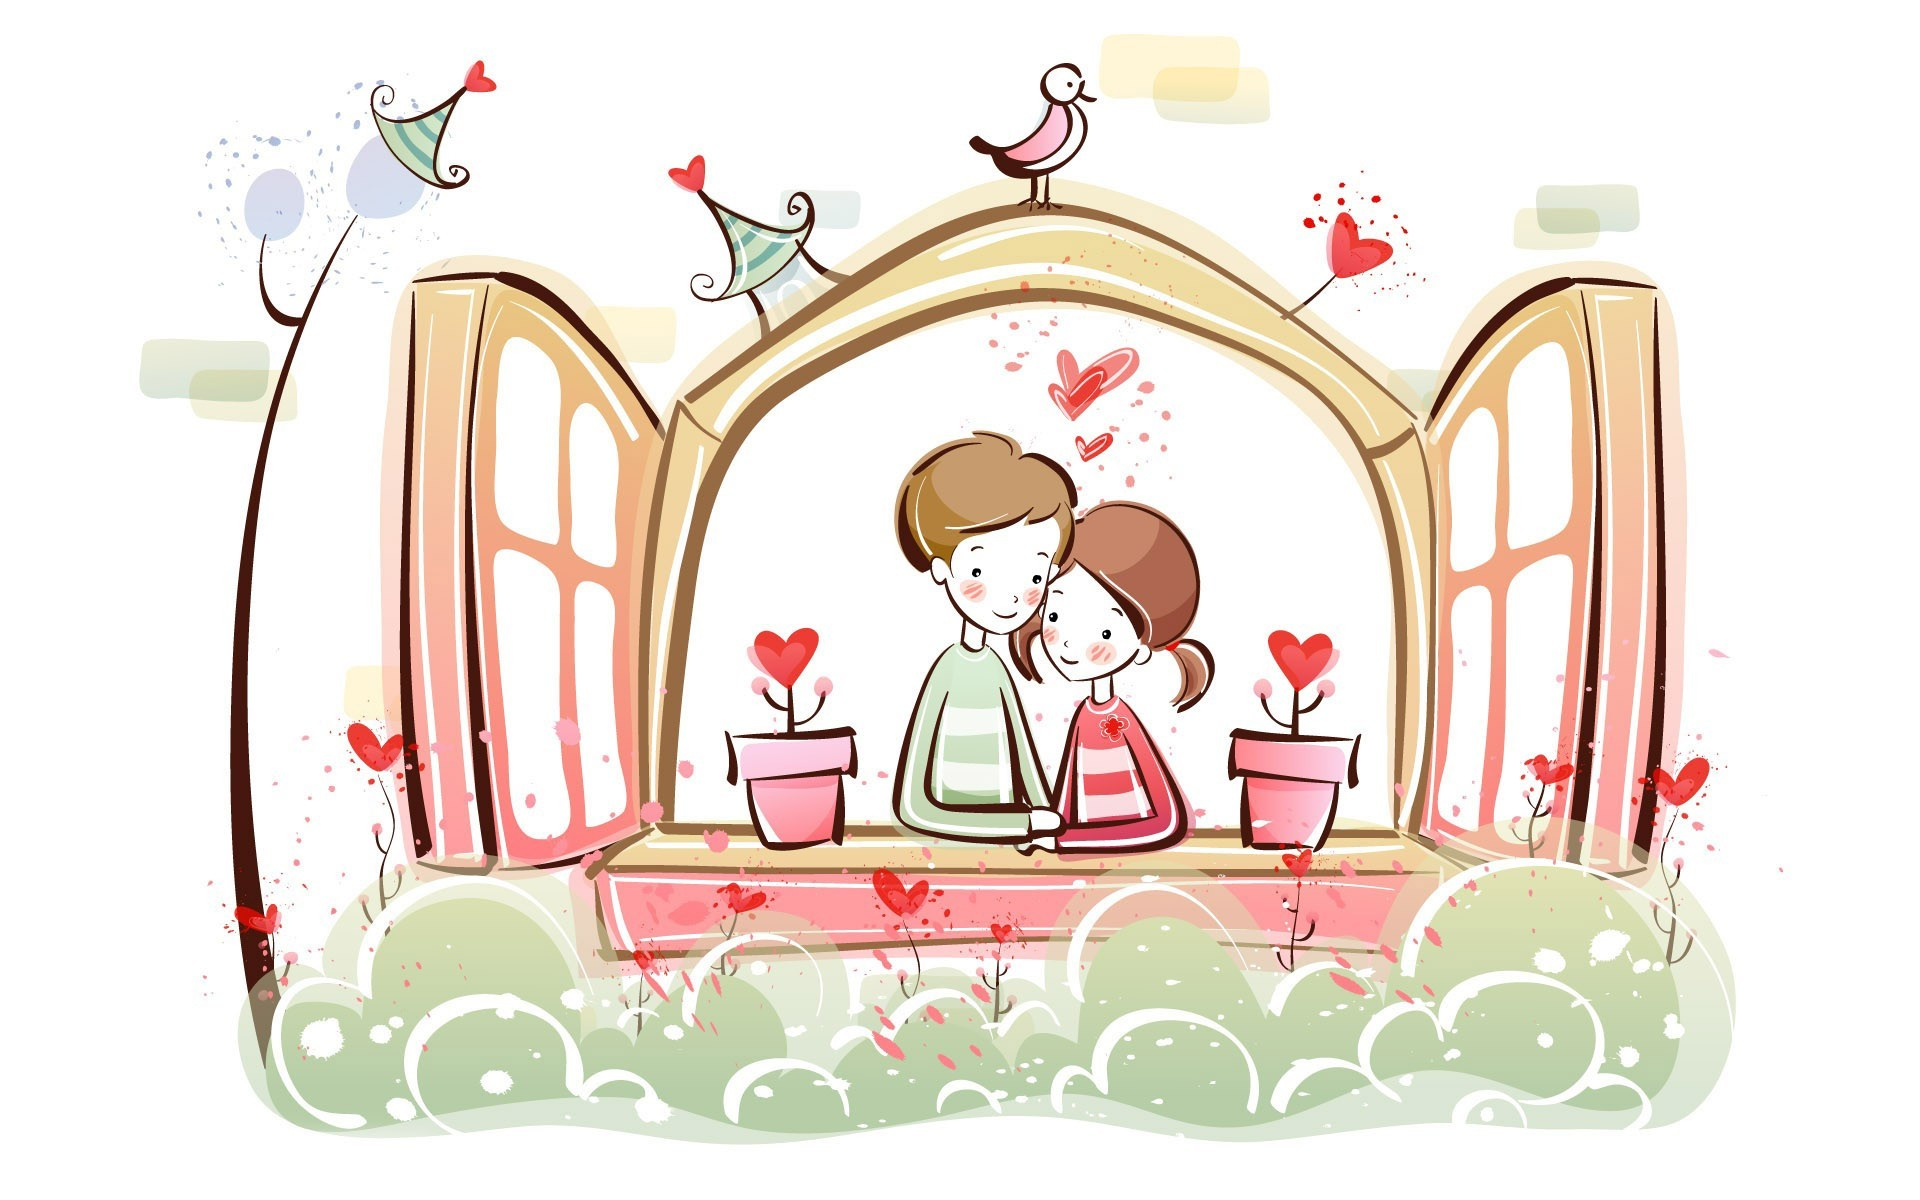 Love Wallpaper For cartoon : cartoon Love Wallpaper - Wallpaper, High Definition, High Quality, Widescreen